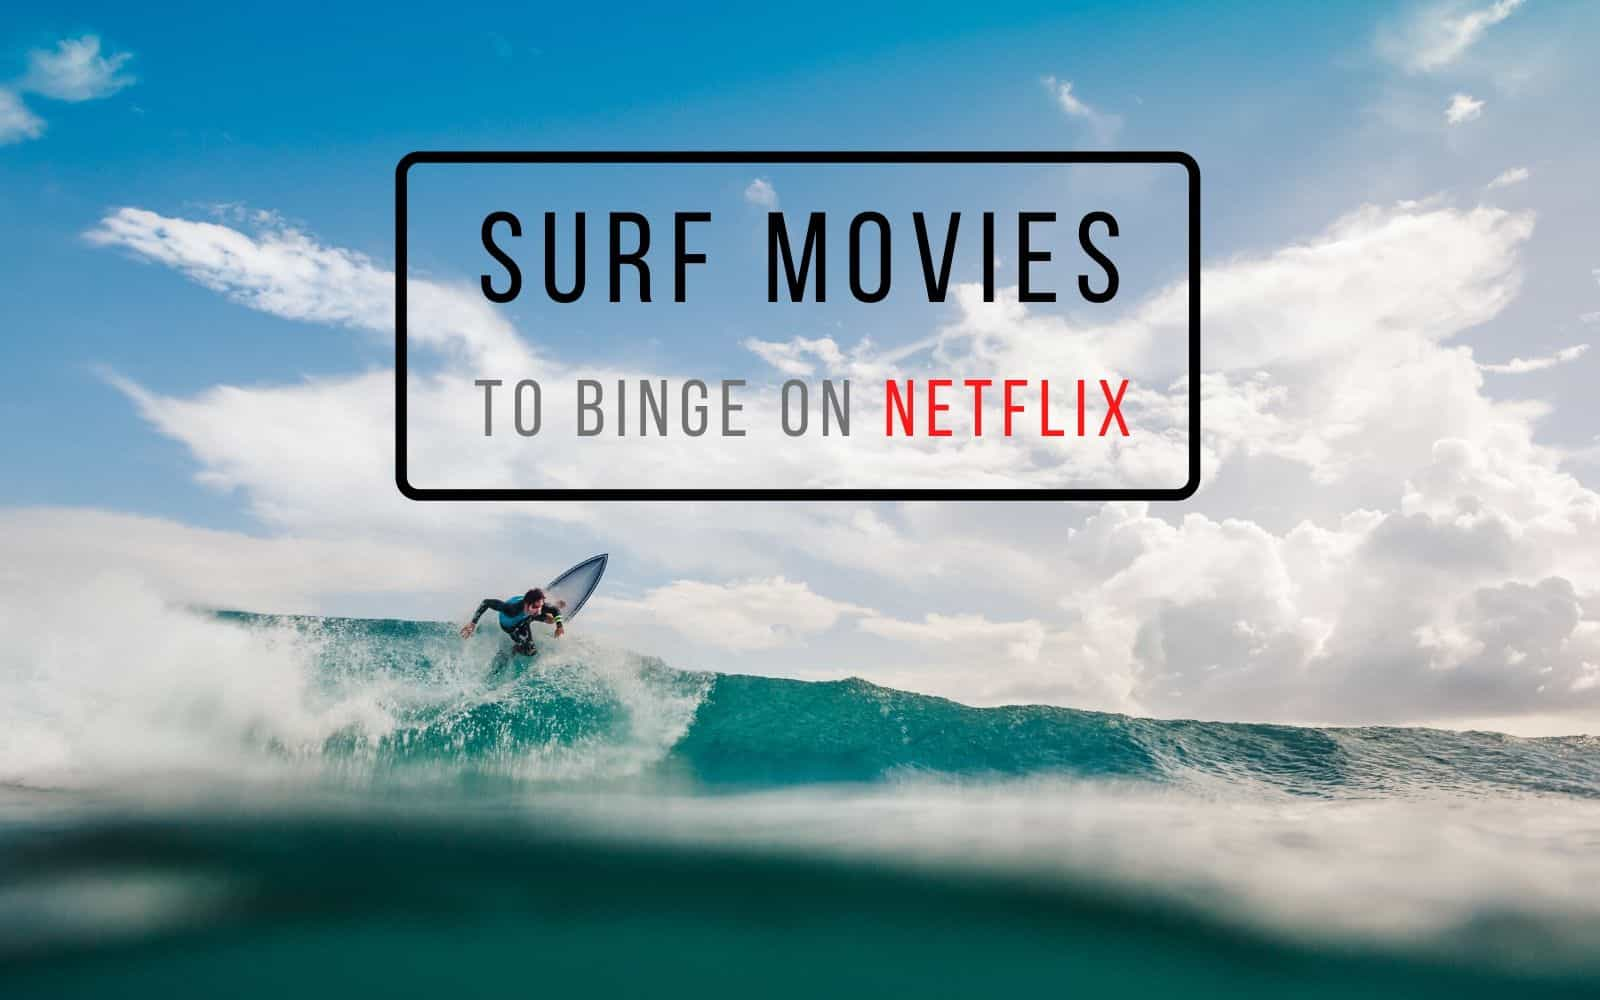 cover photo of a surfer riding a glassy blue wave with a caption in a black box saying: surf movies to binge on netflix